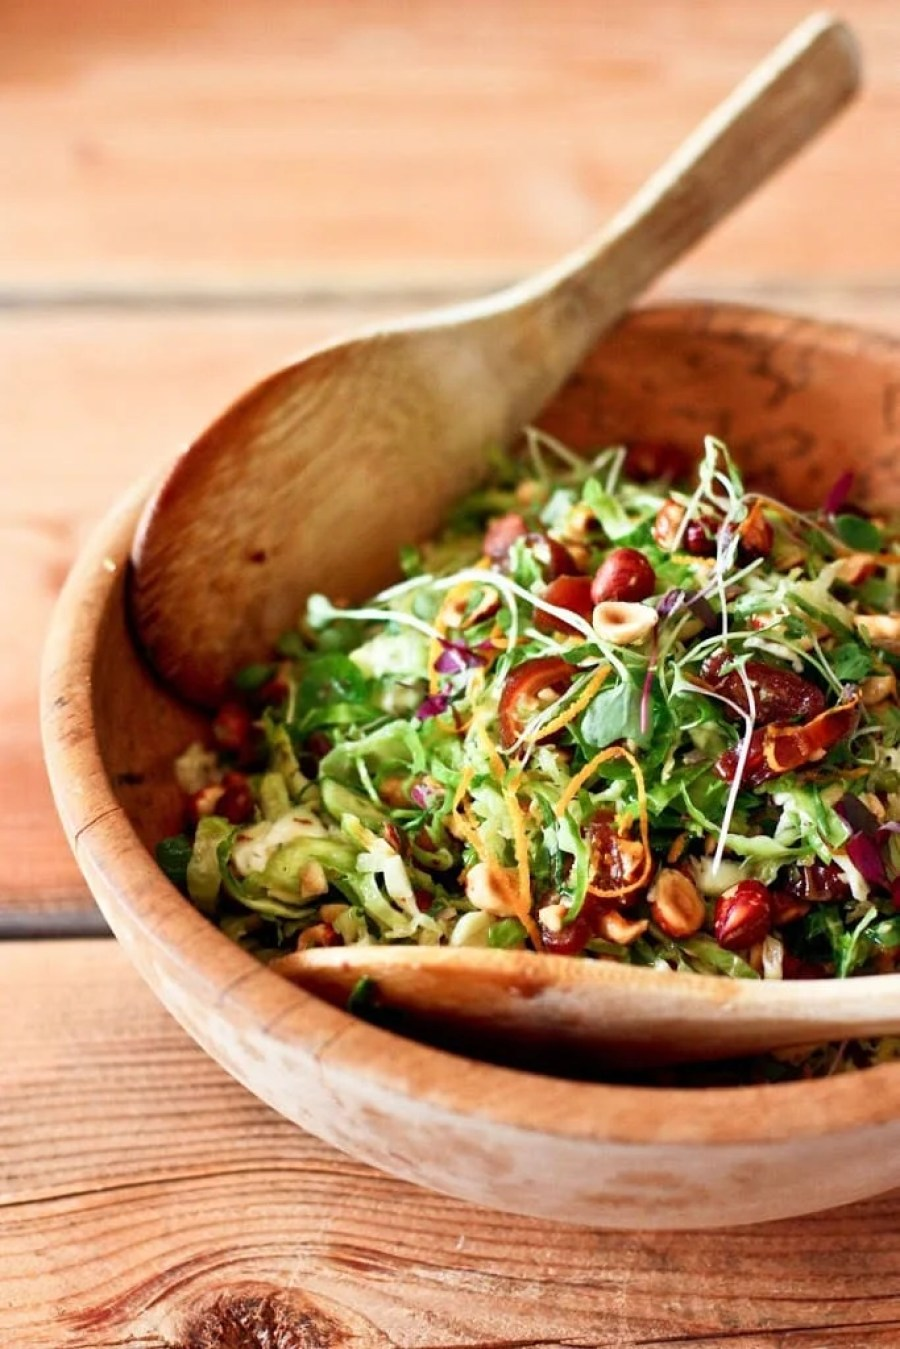 Brussel Sprout Slaw with Hazelnuts and dates+ 15 delicious Thanksgiving SIDE DISHES that will turn your dinner into a feast! | www.feastingathome.com